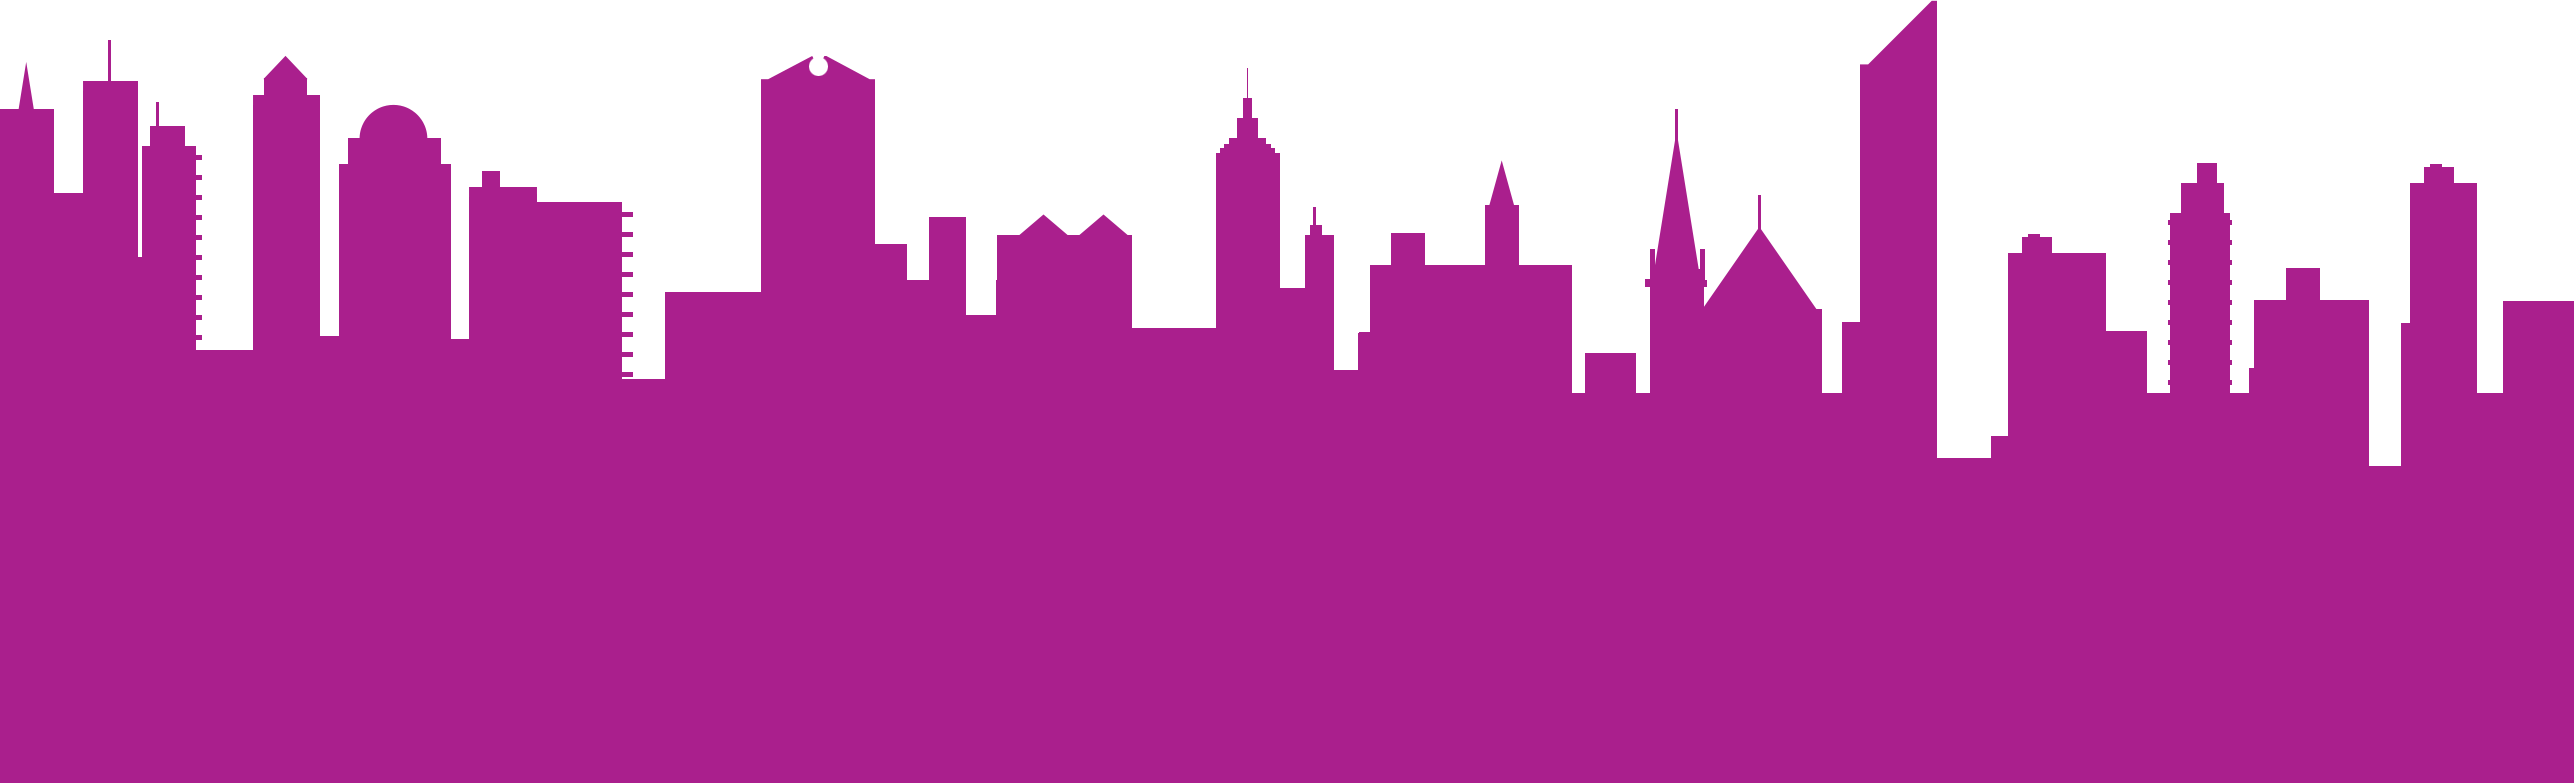 Ny skyline silhouette png. The water tank project